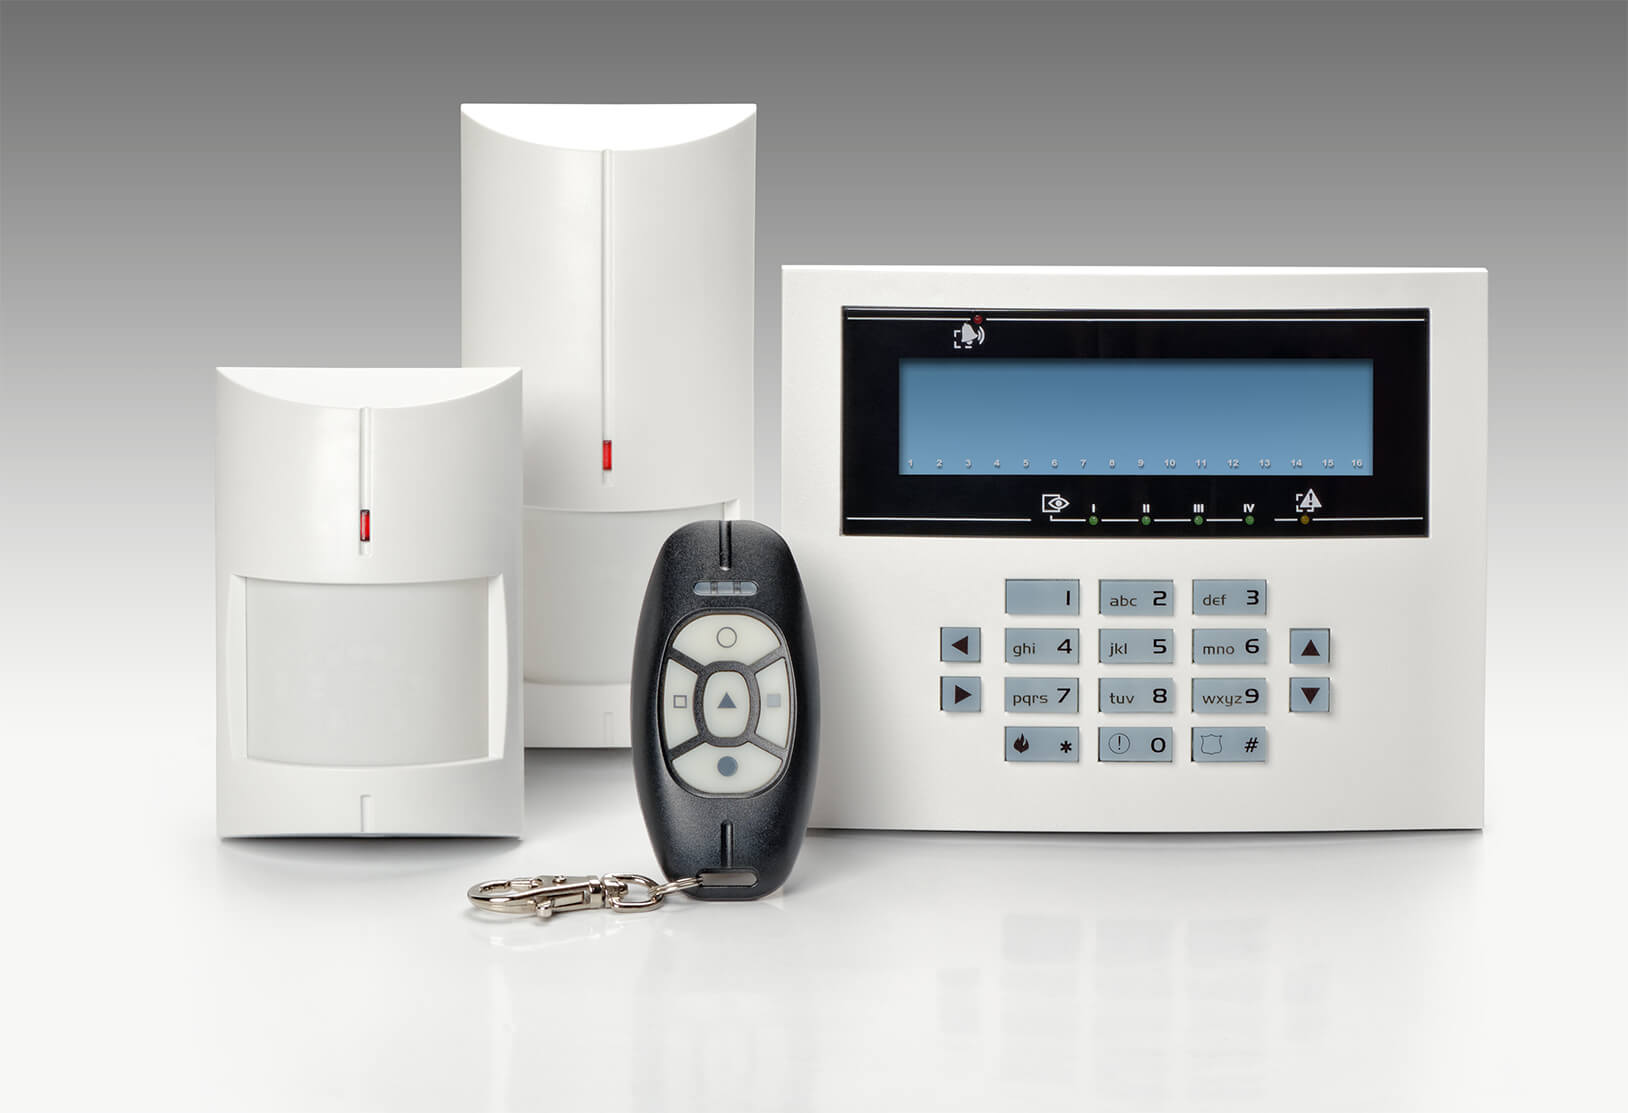 Business & Residential NACOSS Approved Burglar Alarms In Temple EC4 - Local Temple EC4 security company.Call 02078872244 - Dedicated to Safety & Security. Companies, shops and homes ..